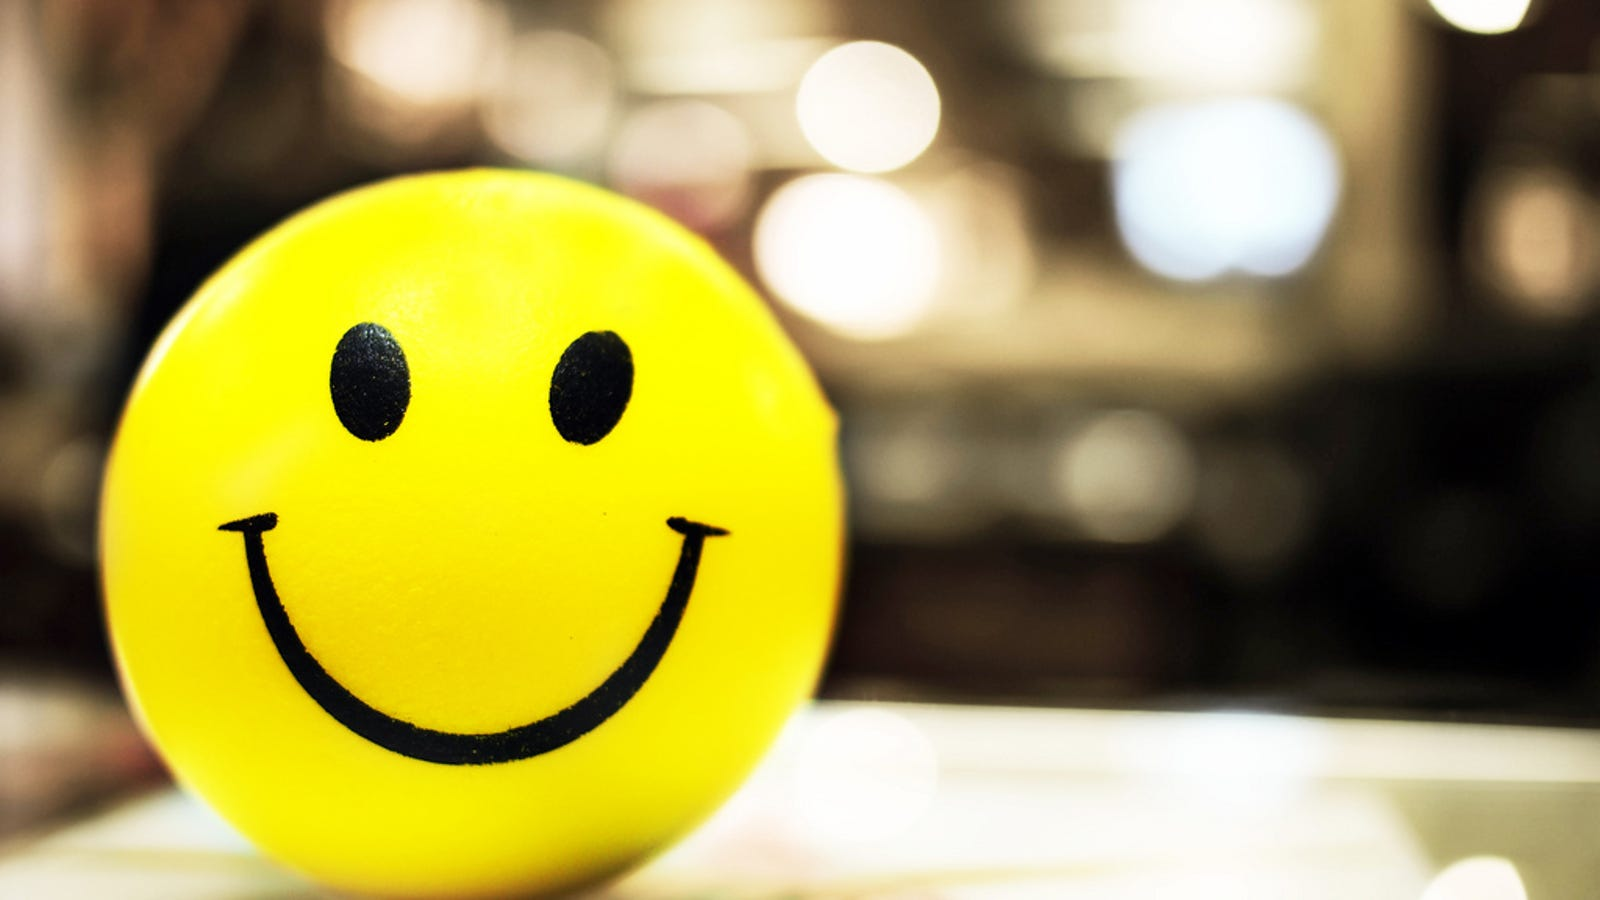 One of the best habits for happy living may also be the least practiced